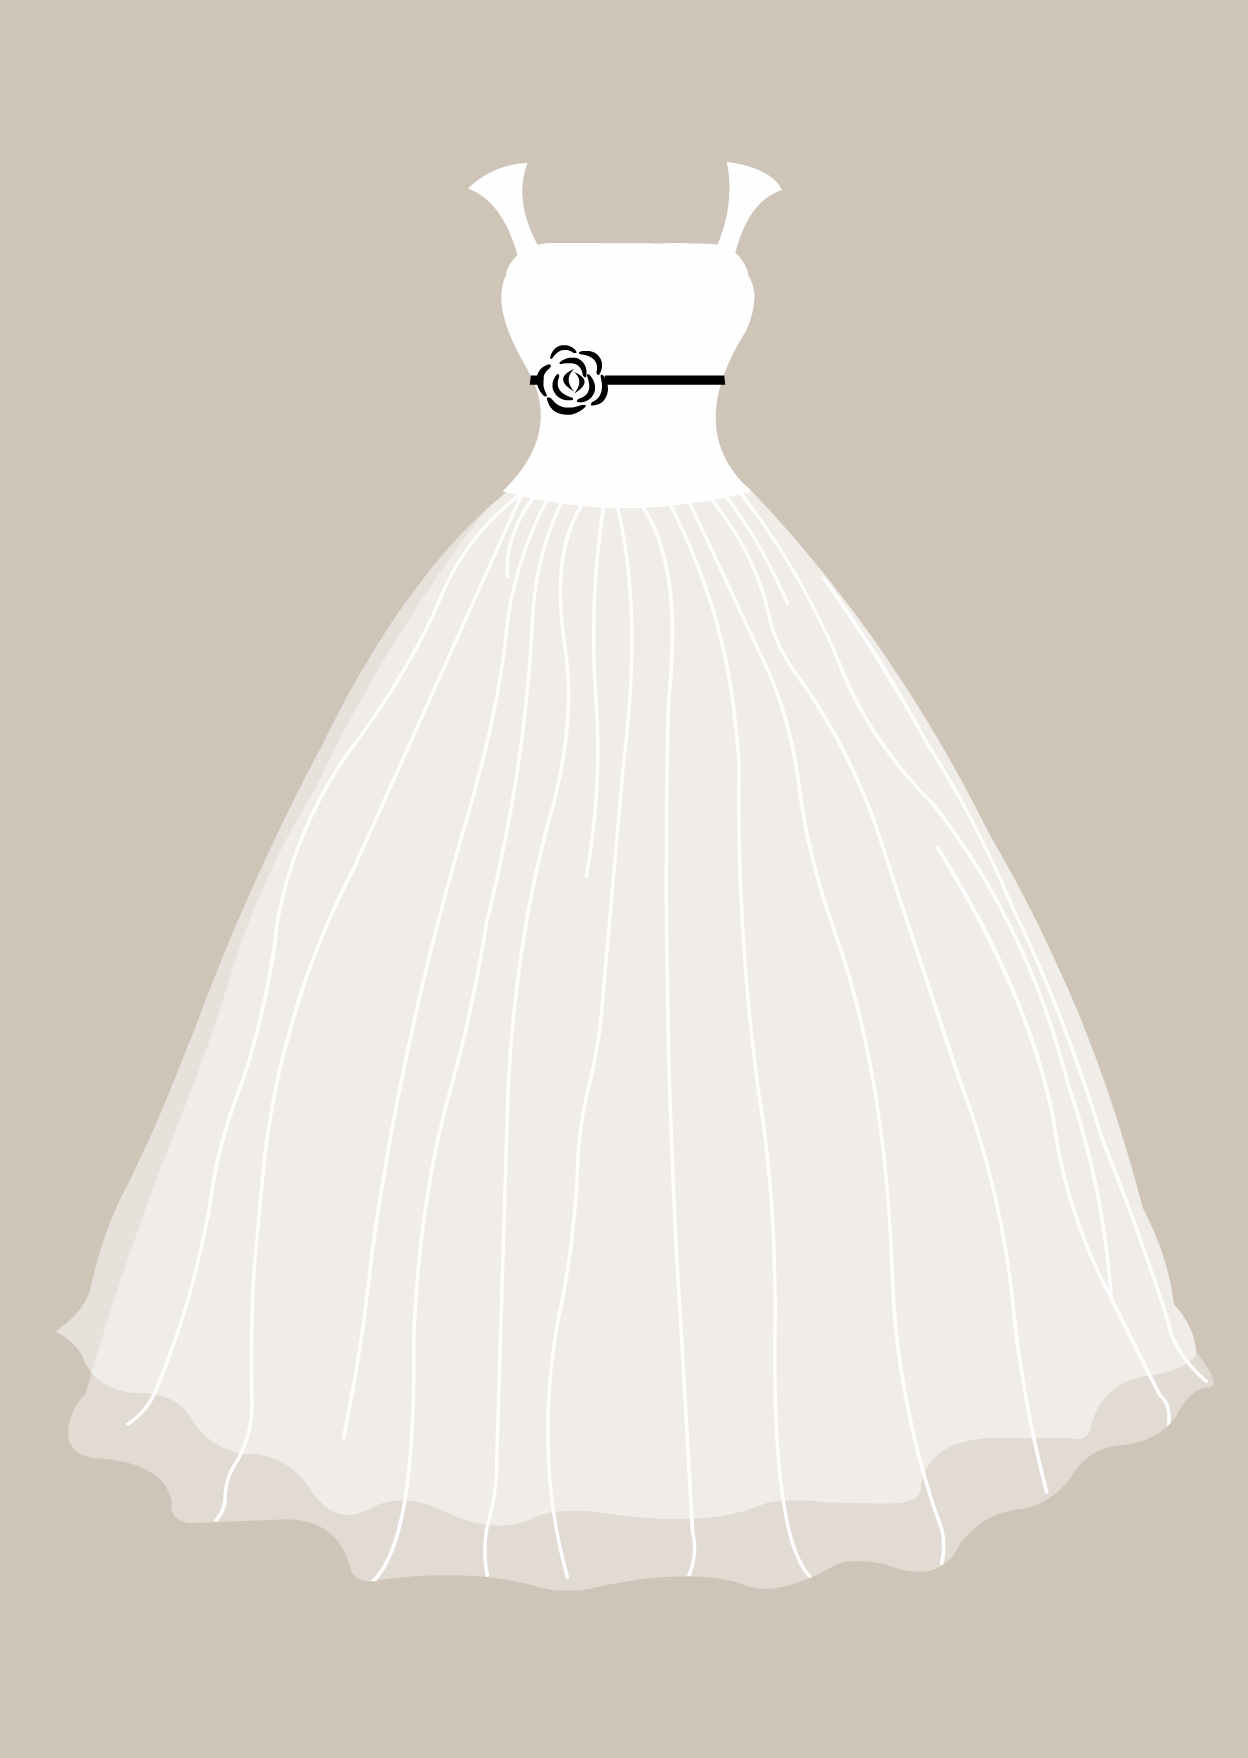 Tuxedo clipart bride dress. Wedding and tux png